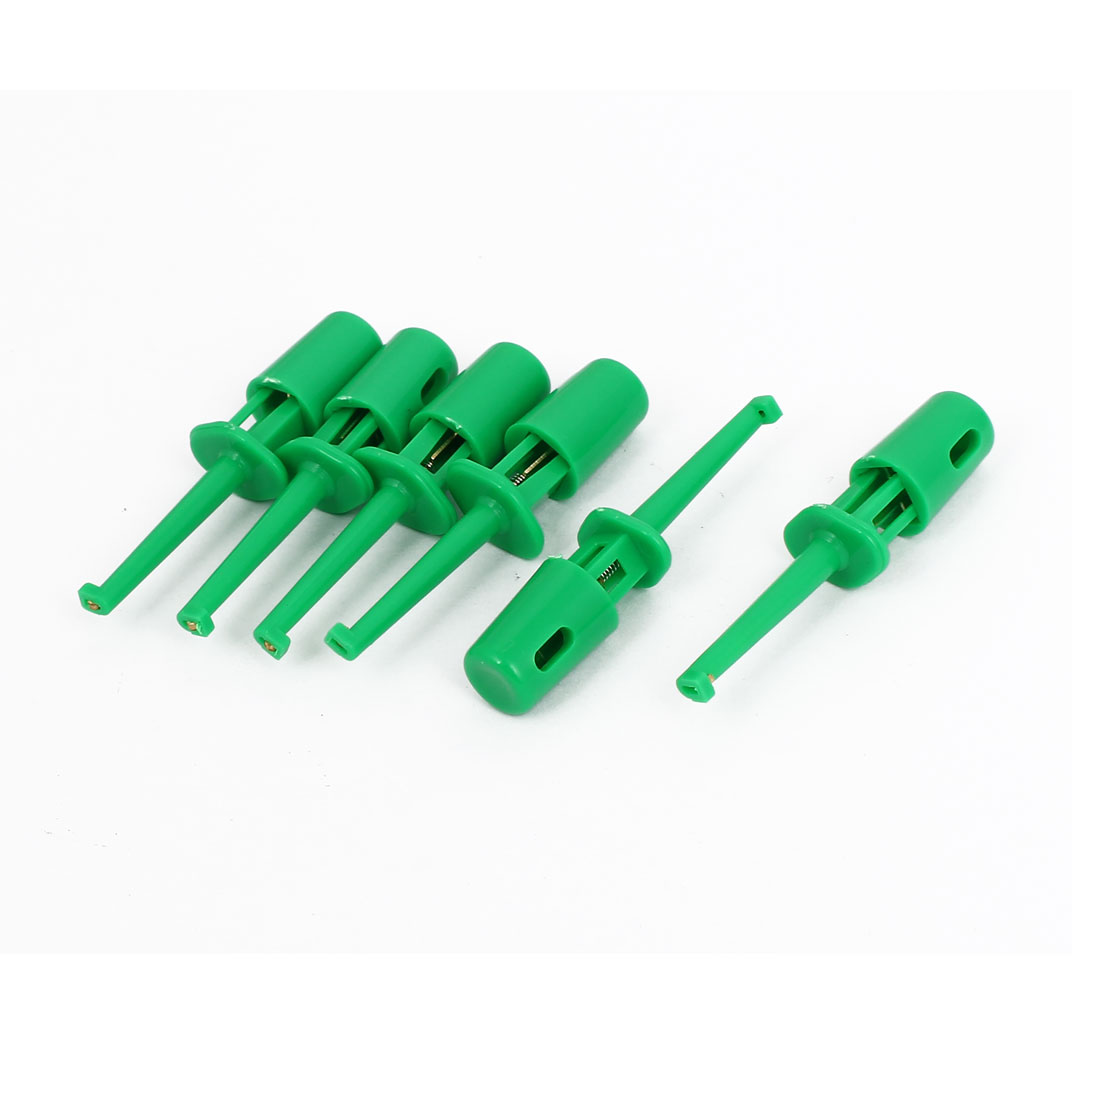 6pcs Plastic Covered Insulation Electrical Lead Wire Testing Hook Clip Green